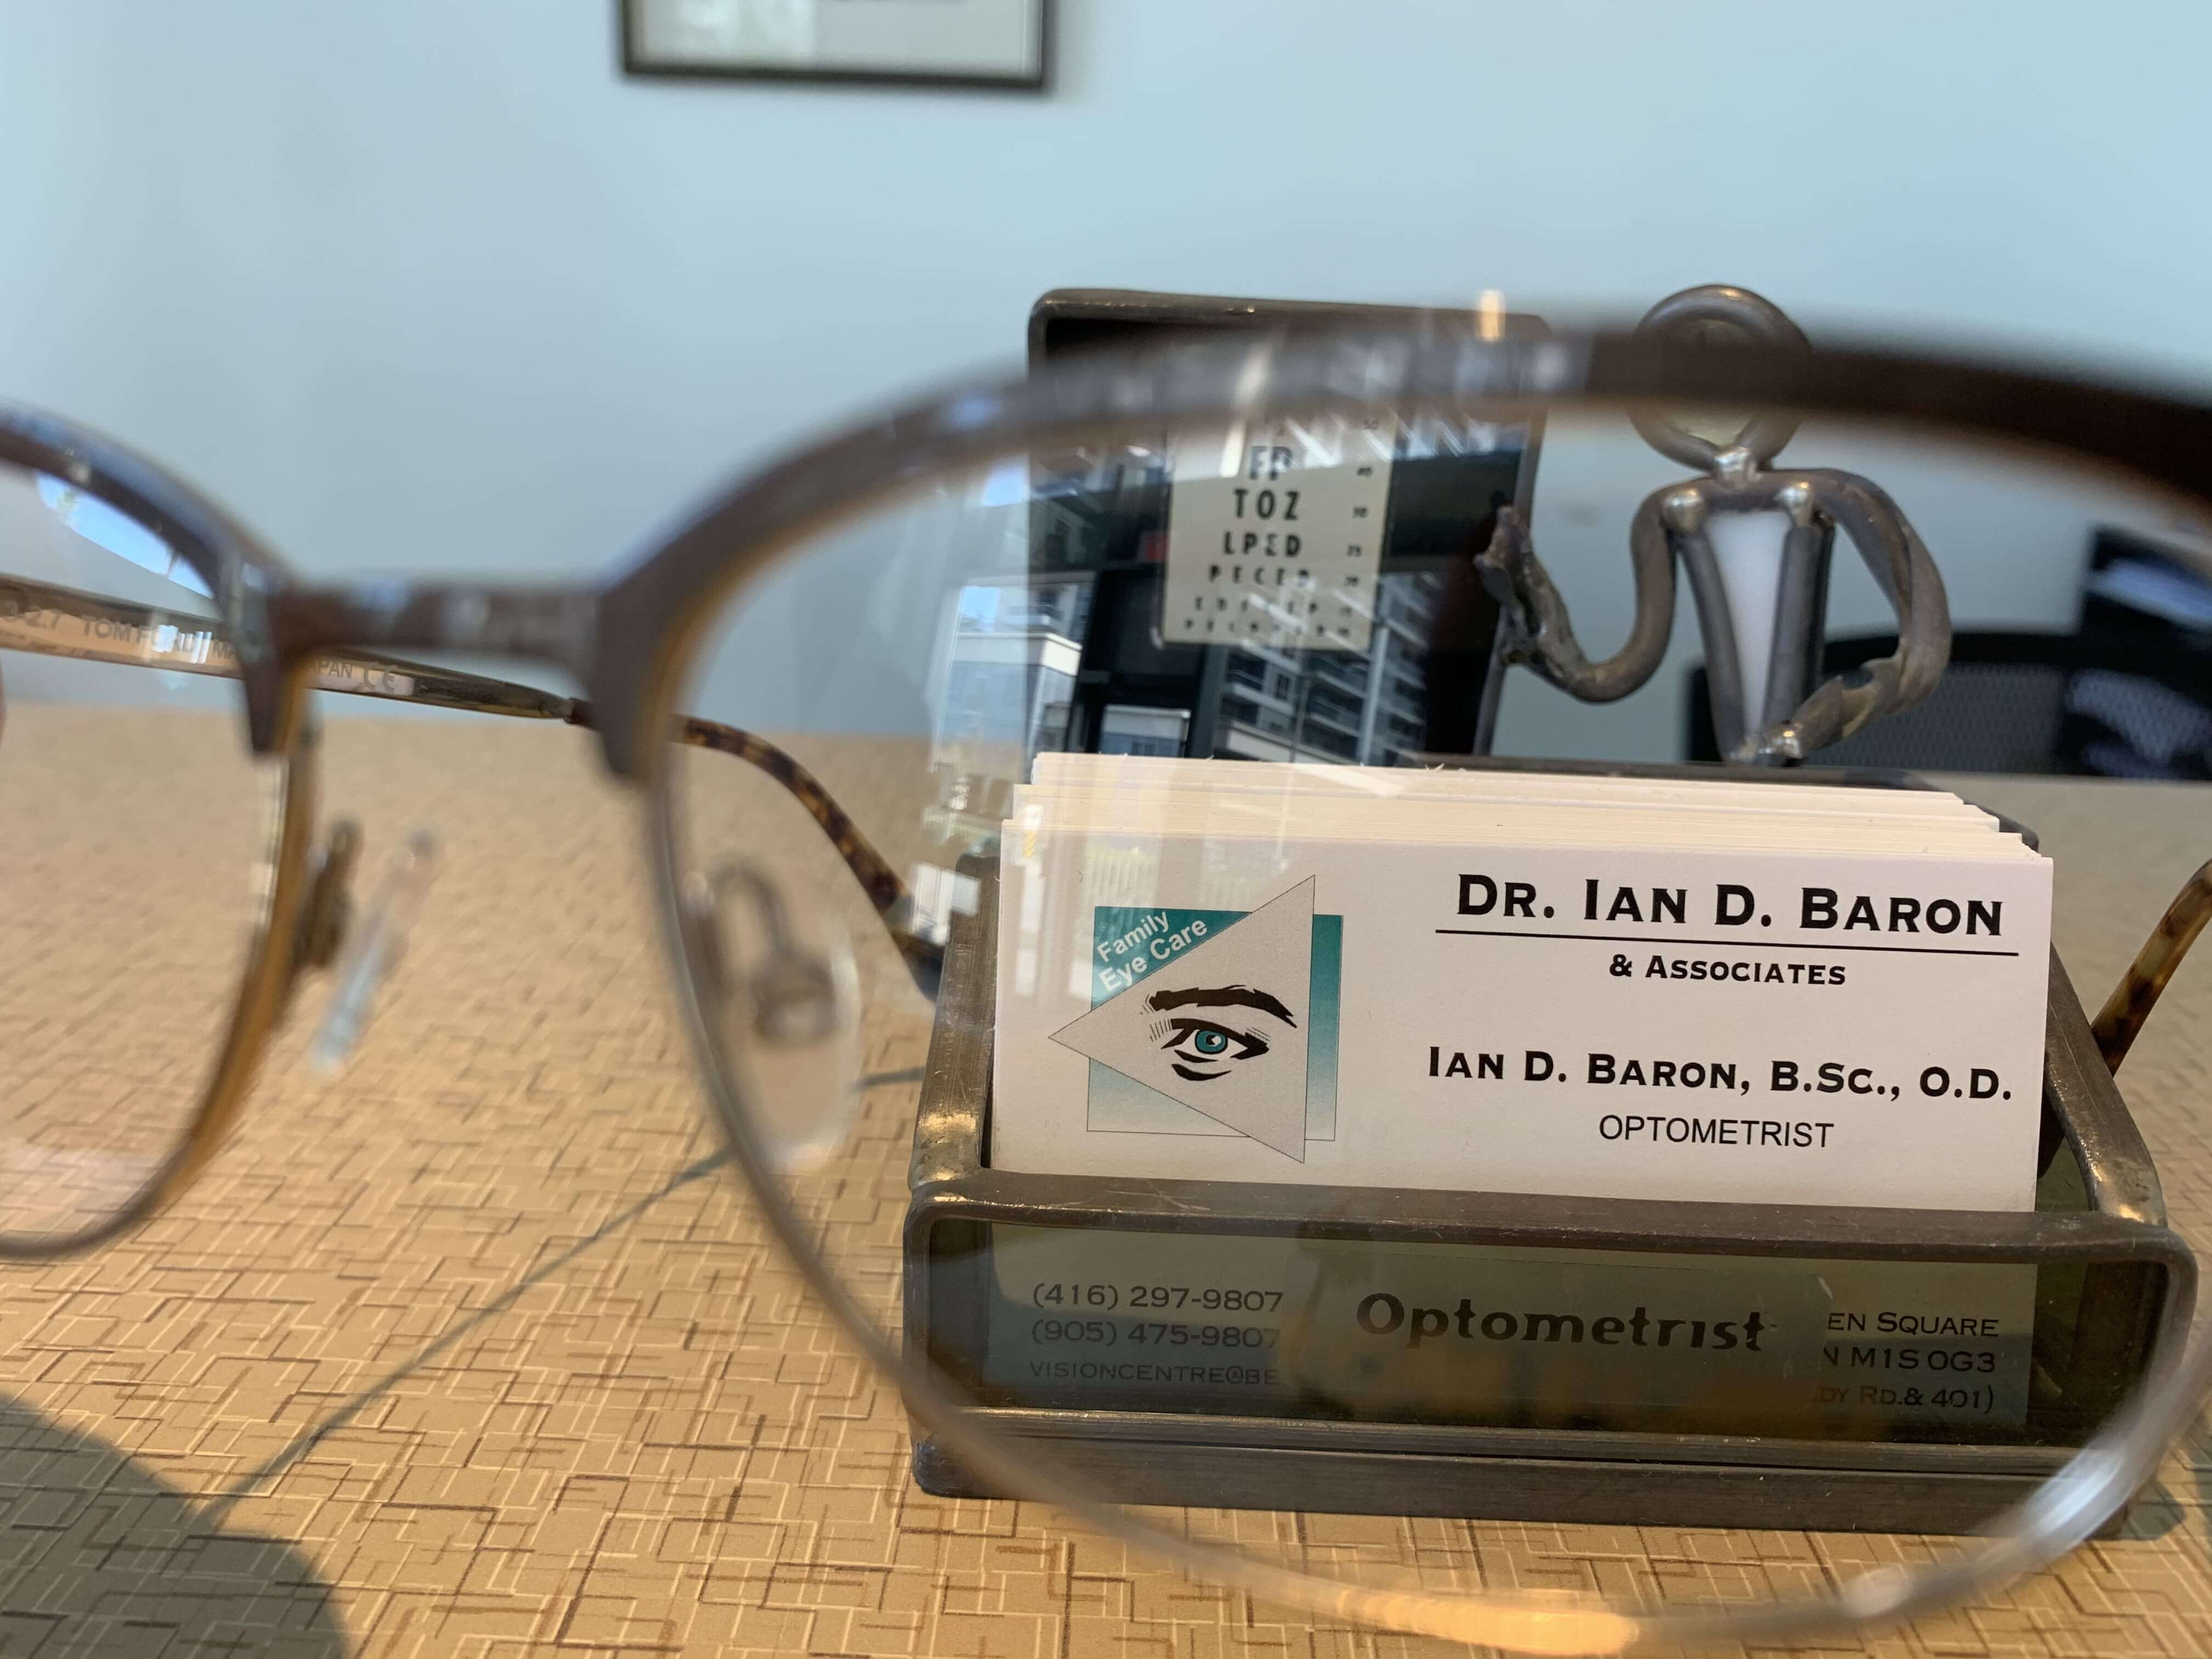 Dr. Ian D. Baron Business card, with eyeglasses in back